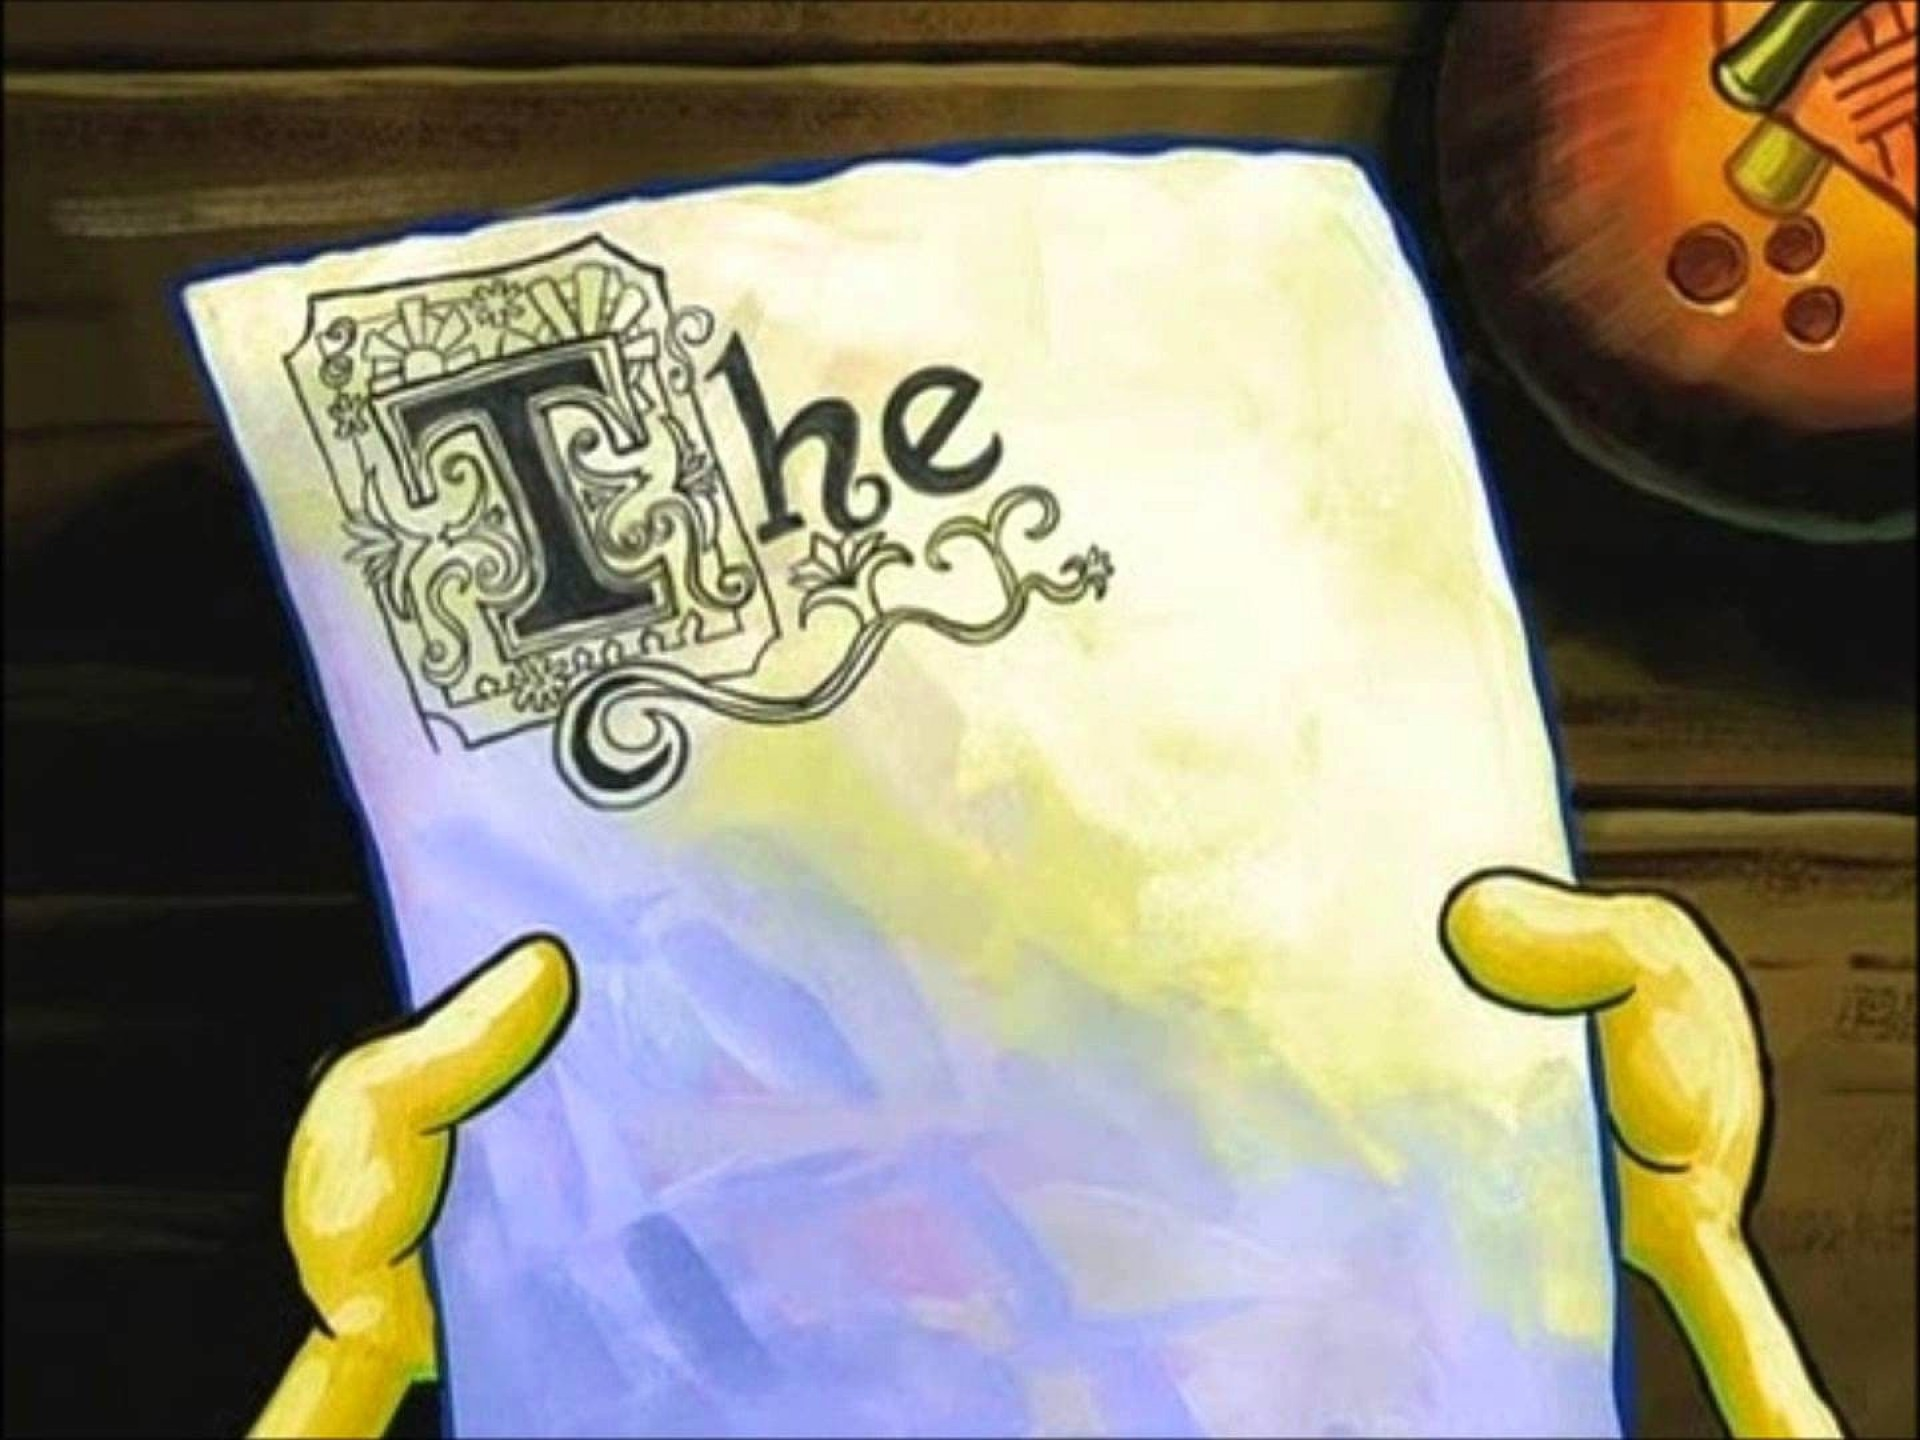 008 Essay Example Surprising Spongebob Deleted Scene Writing Meme House 1920